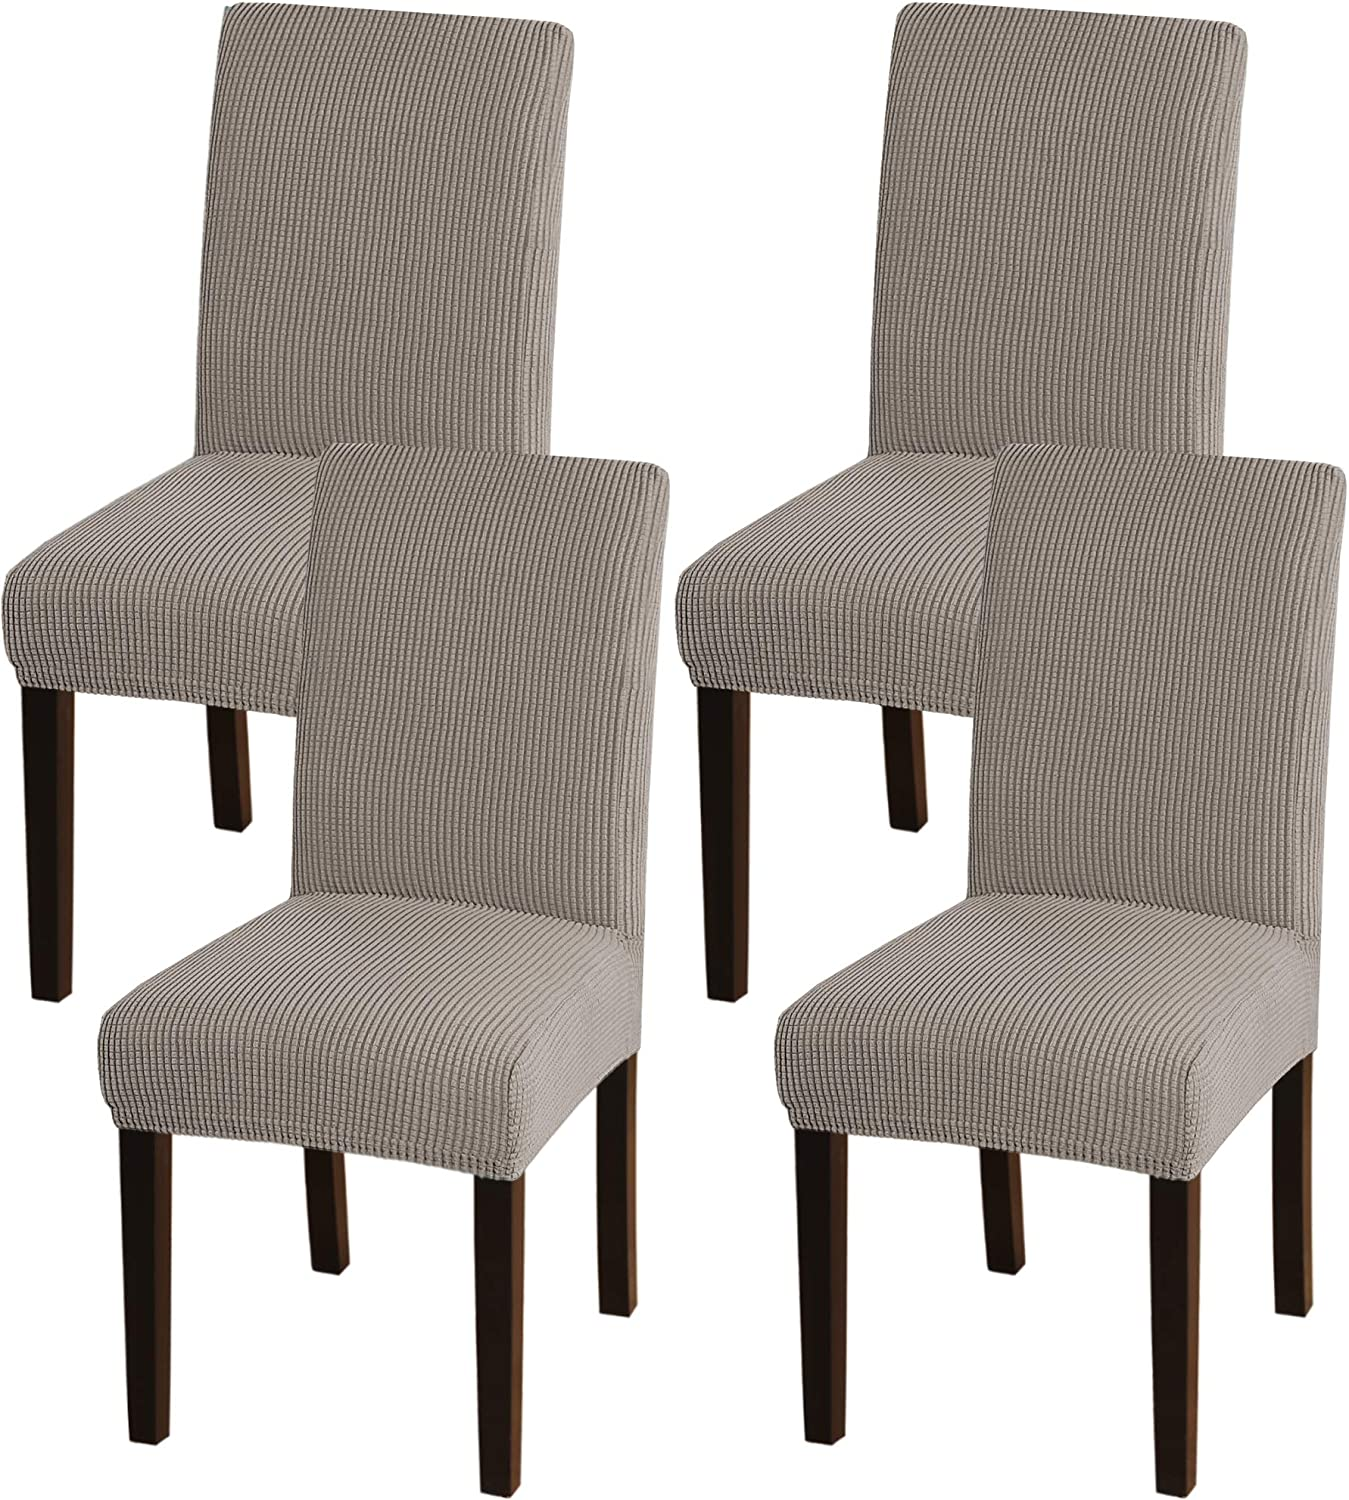 Parsons chair slipcover tutorial! Great